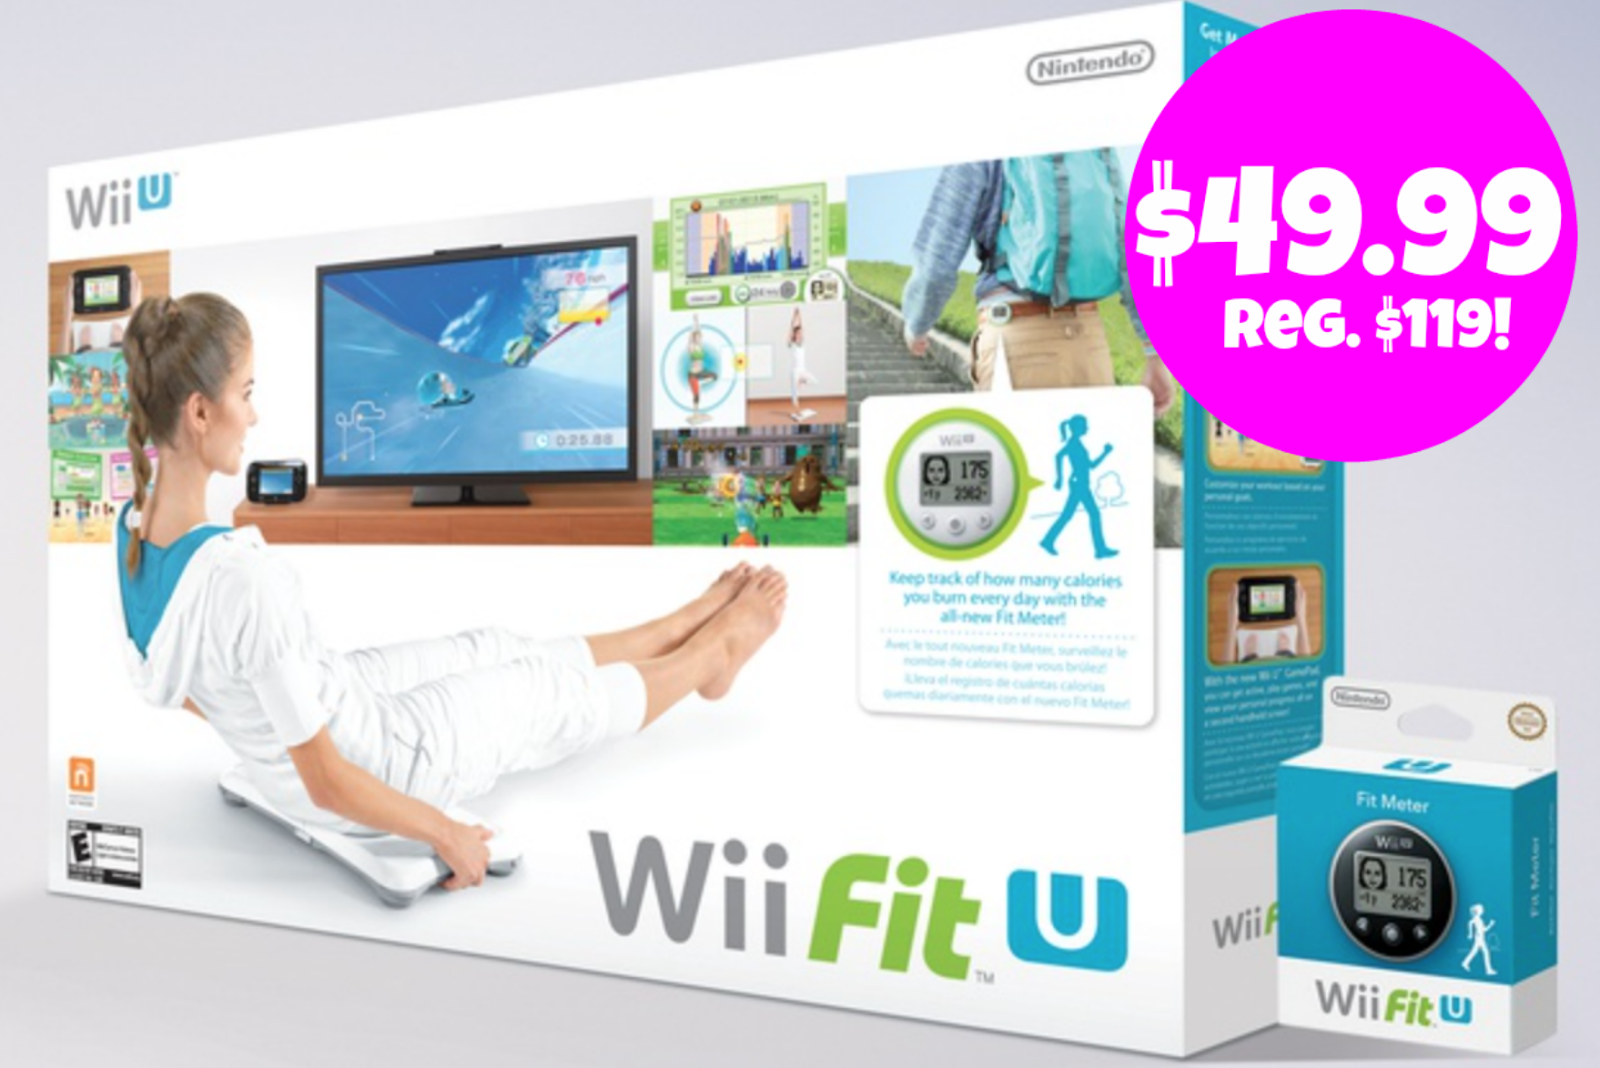 http://www.thebinderladies.com/2014/12/groupon-wii-fit-u-game-w-balance-board.html